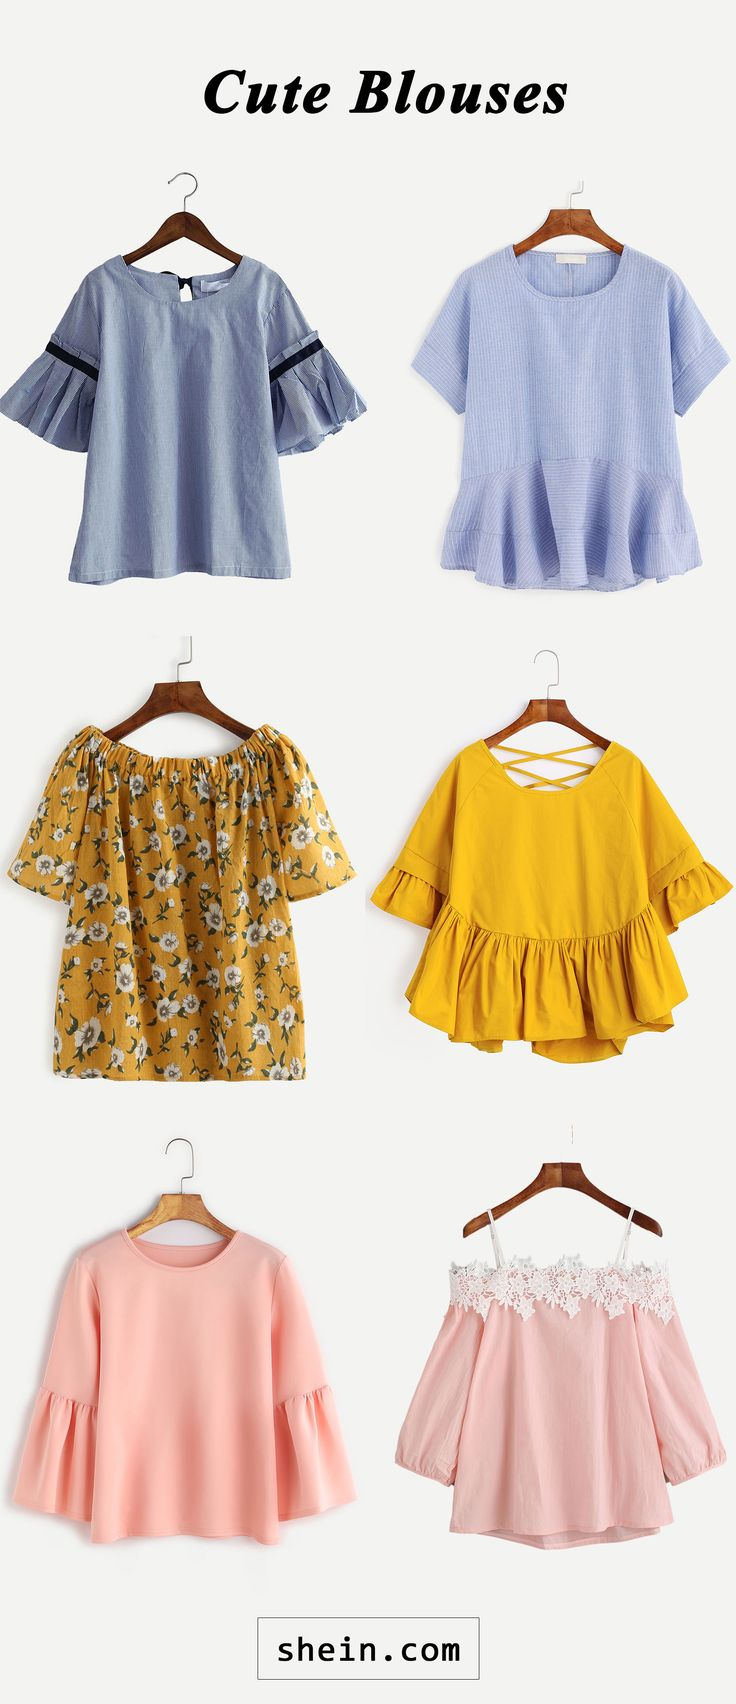 Cheap and cheerful blouses! http://blessfulboutique.com/